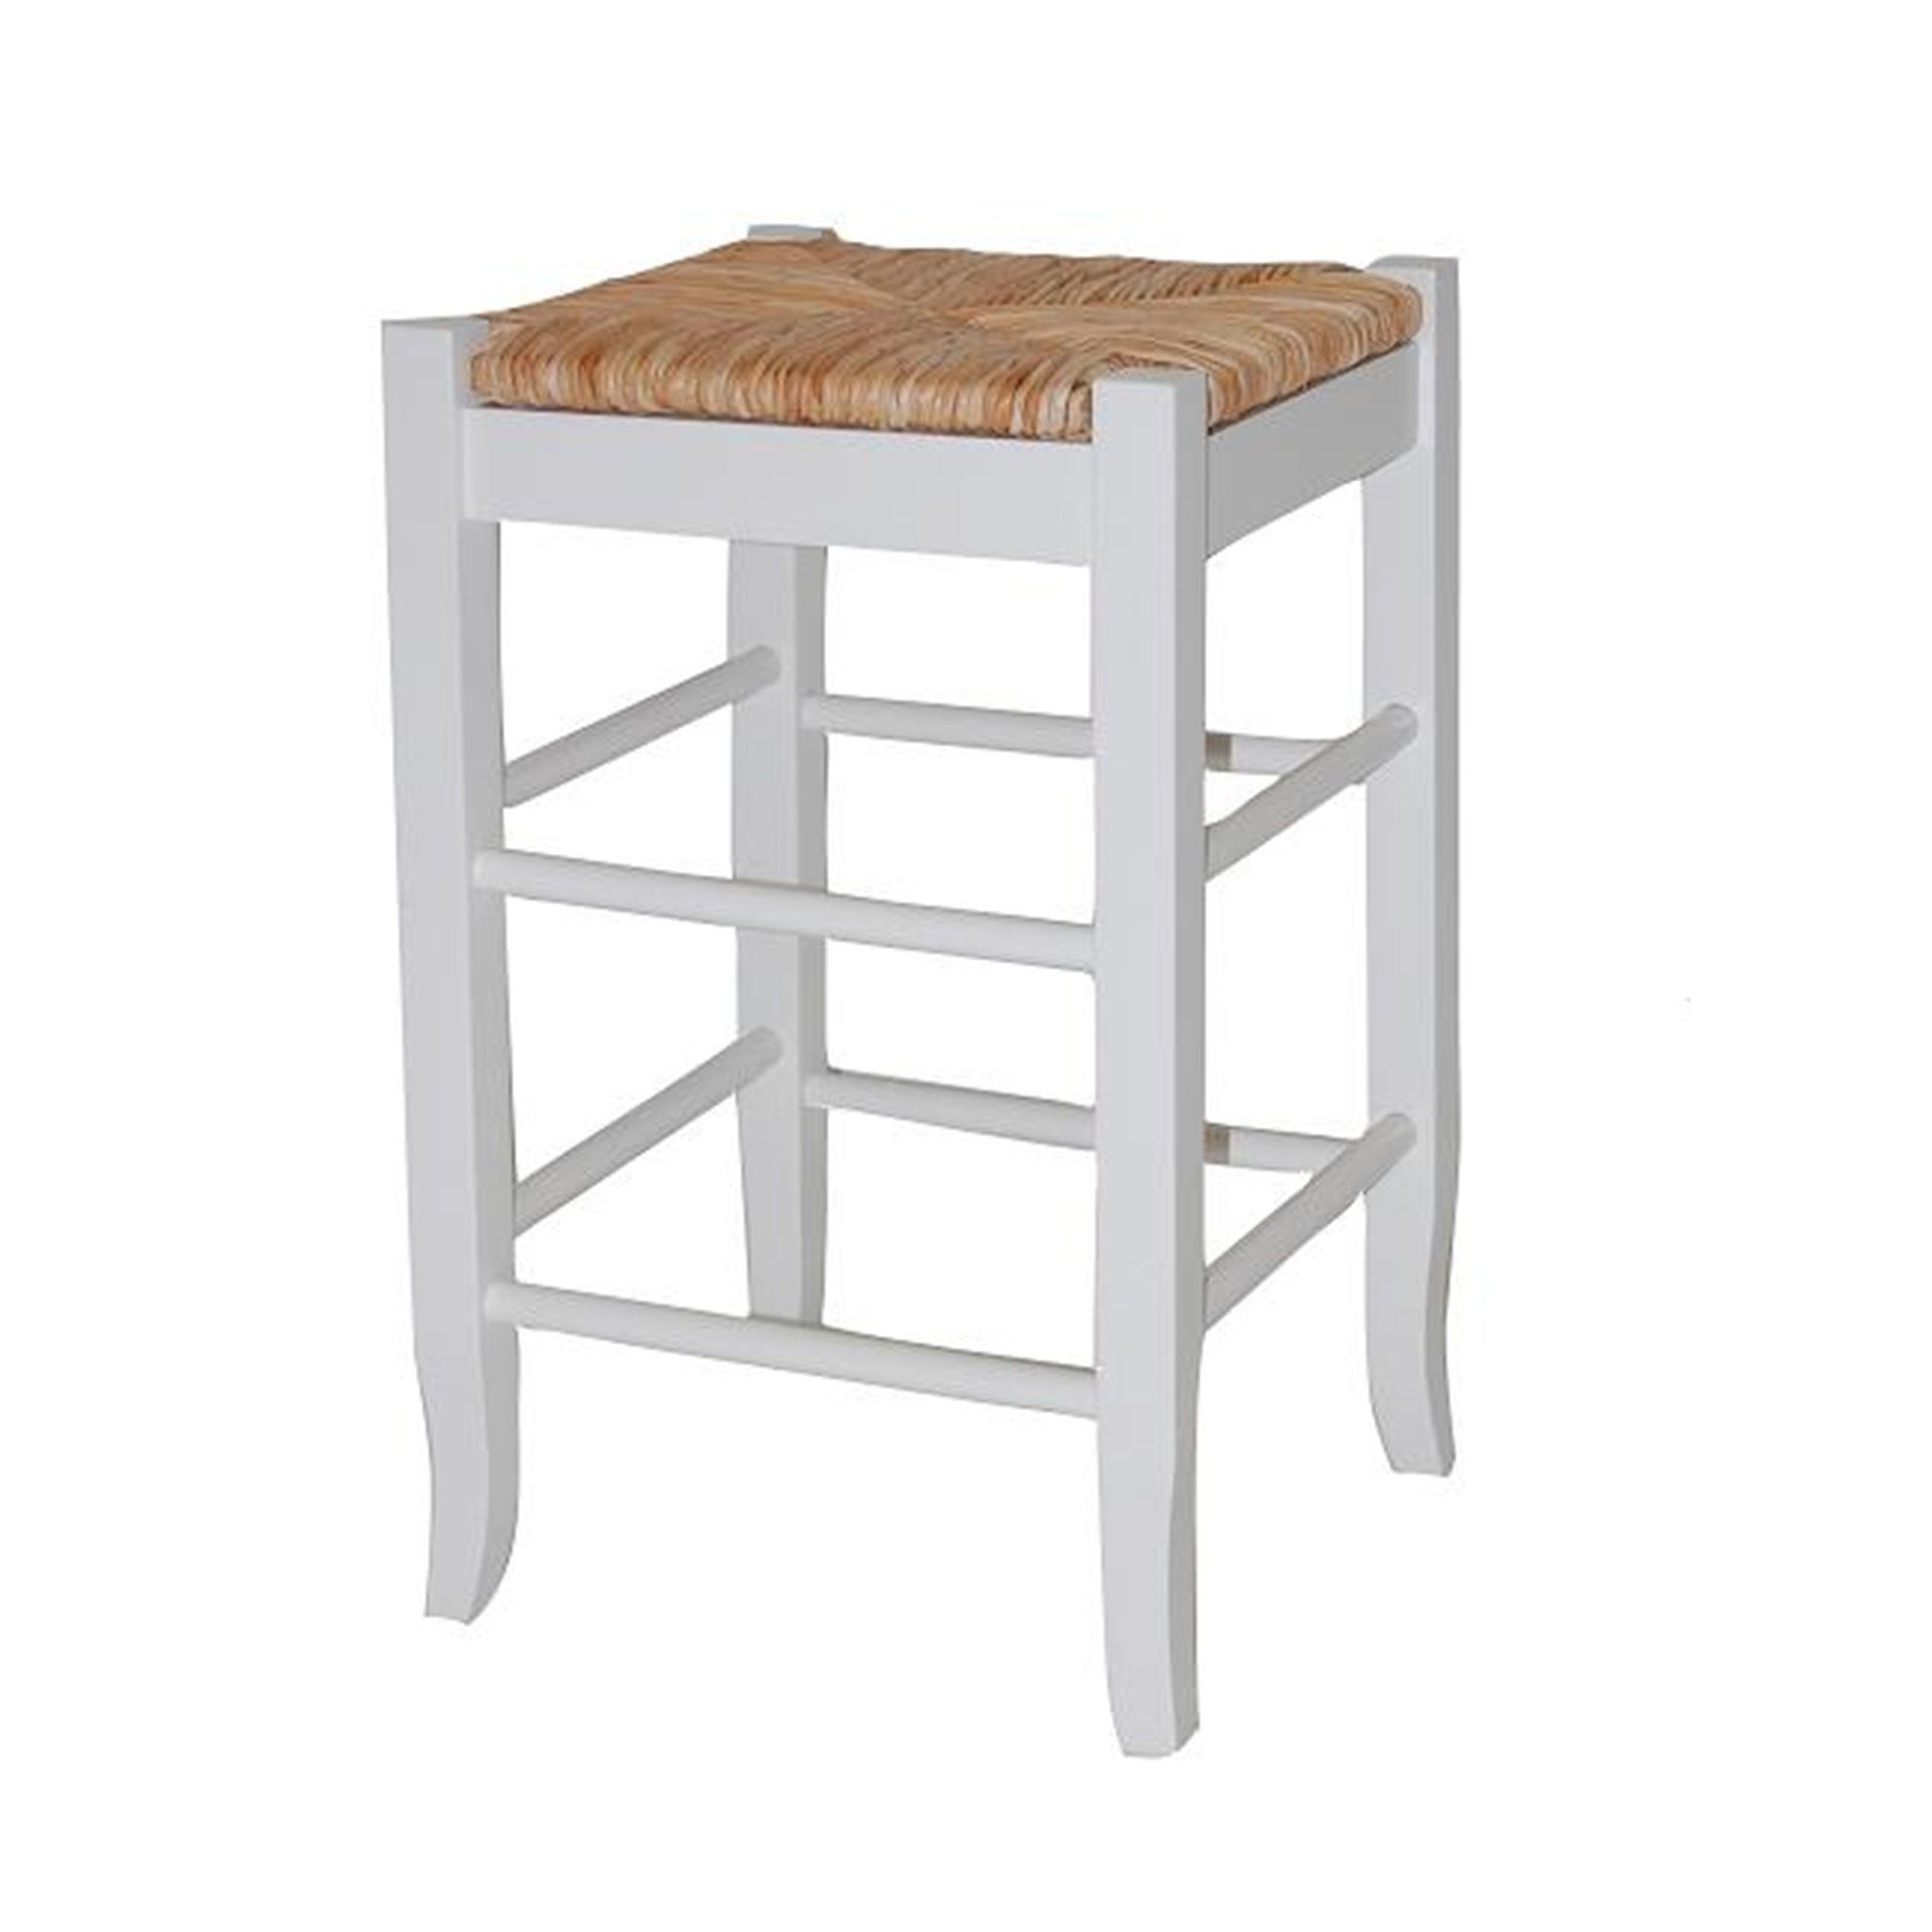 Square Wooden Frame Counter Stool With Hand Woven Rush White And Brown Bm61433 Counter Stools Furniture Bar Stools